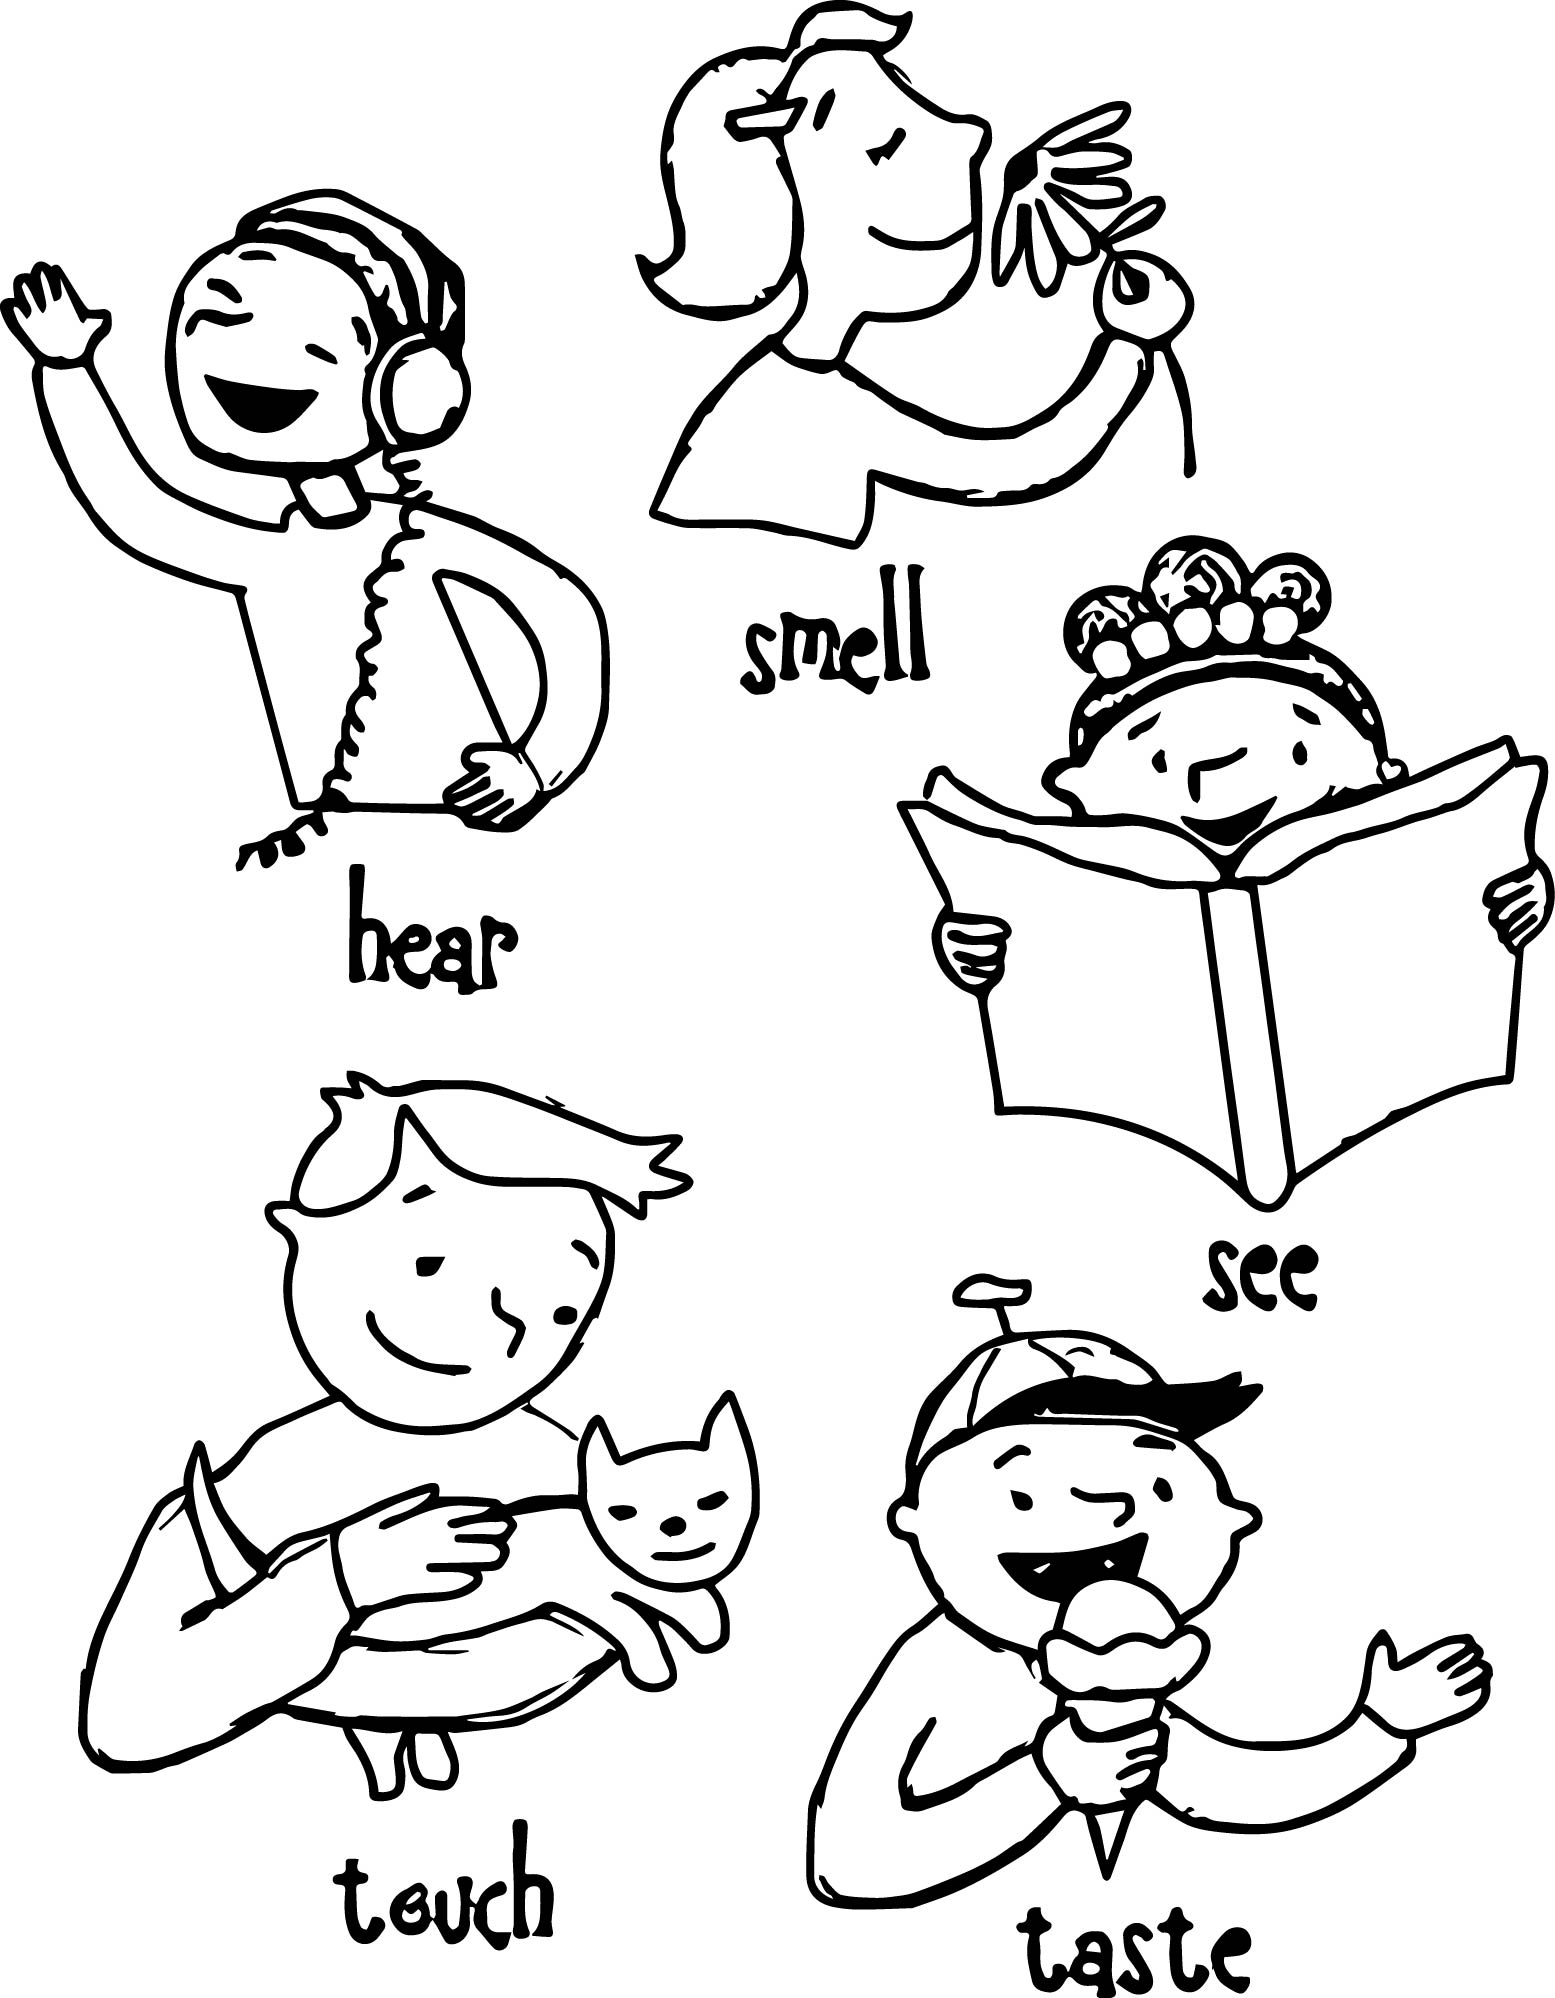 5 Senses Clipart Black And White 5 Senses Black And White